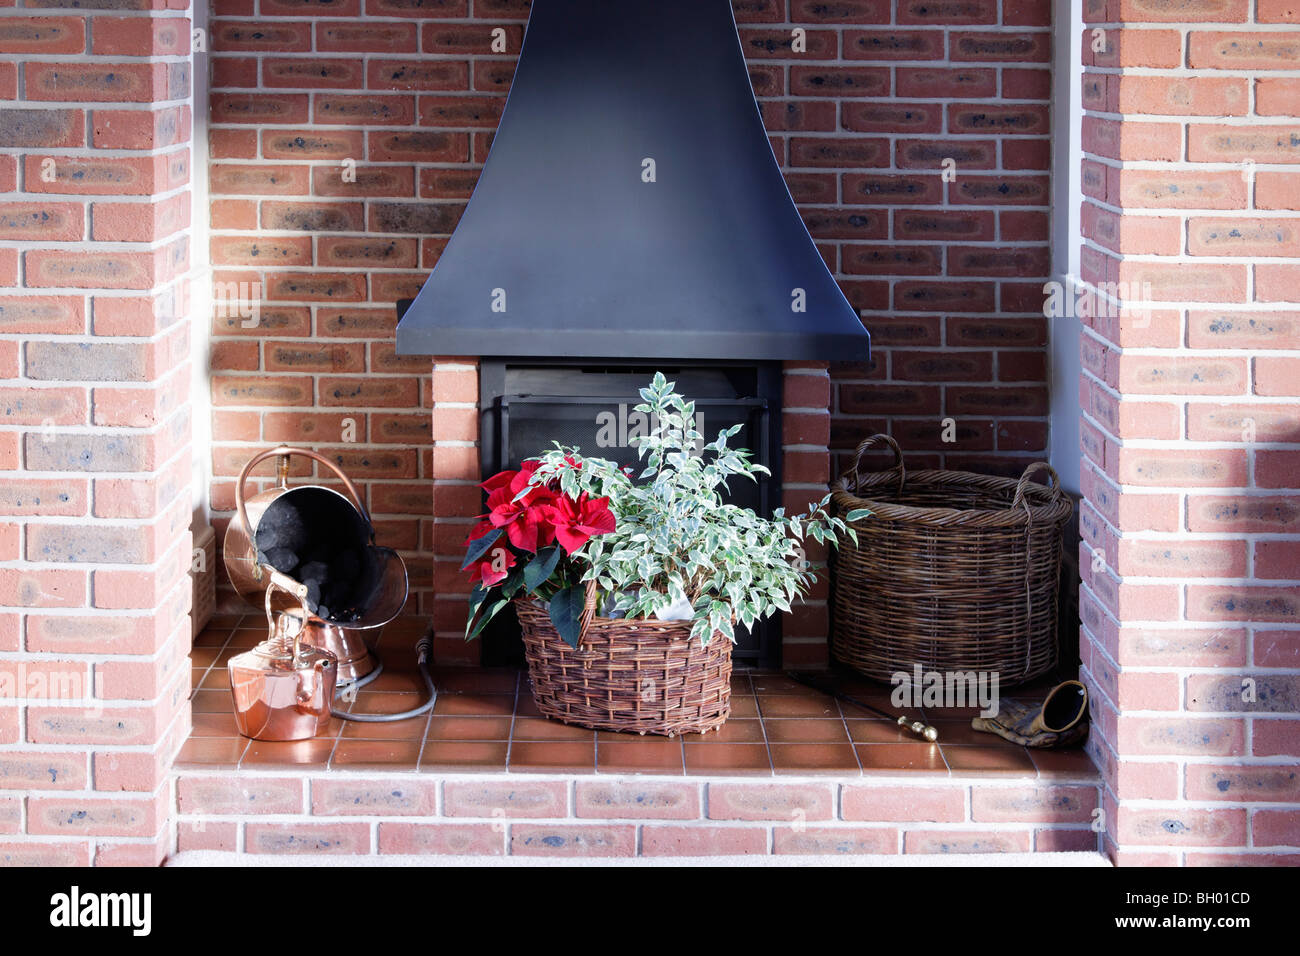 A fire place for burning wood or coal. - Stock Image